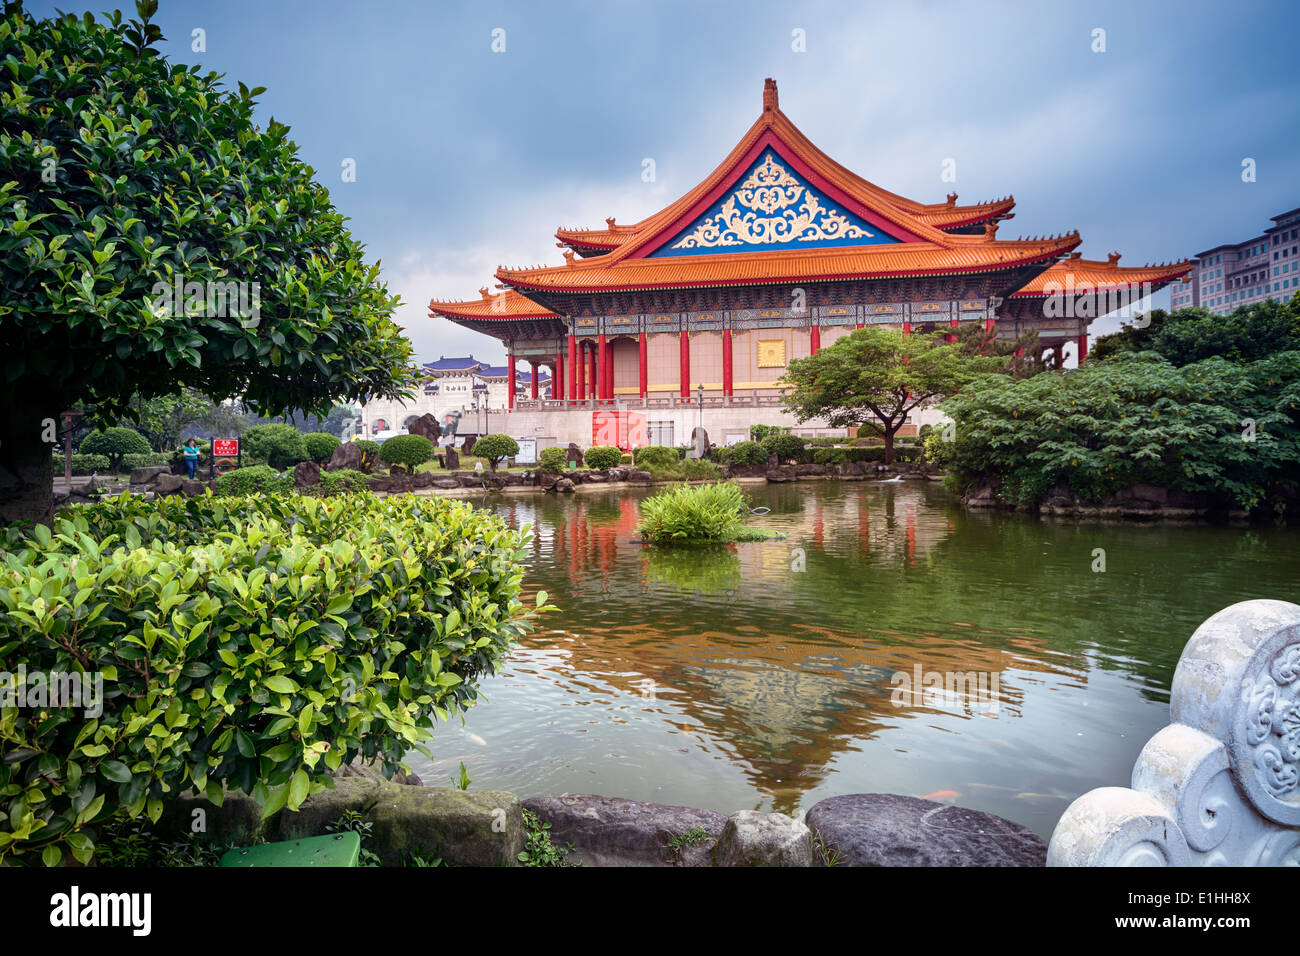 National Concert Hall at the Liberty Square in Taipei - Taiwan. - Stock Image